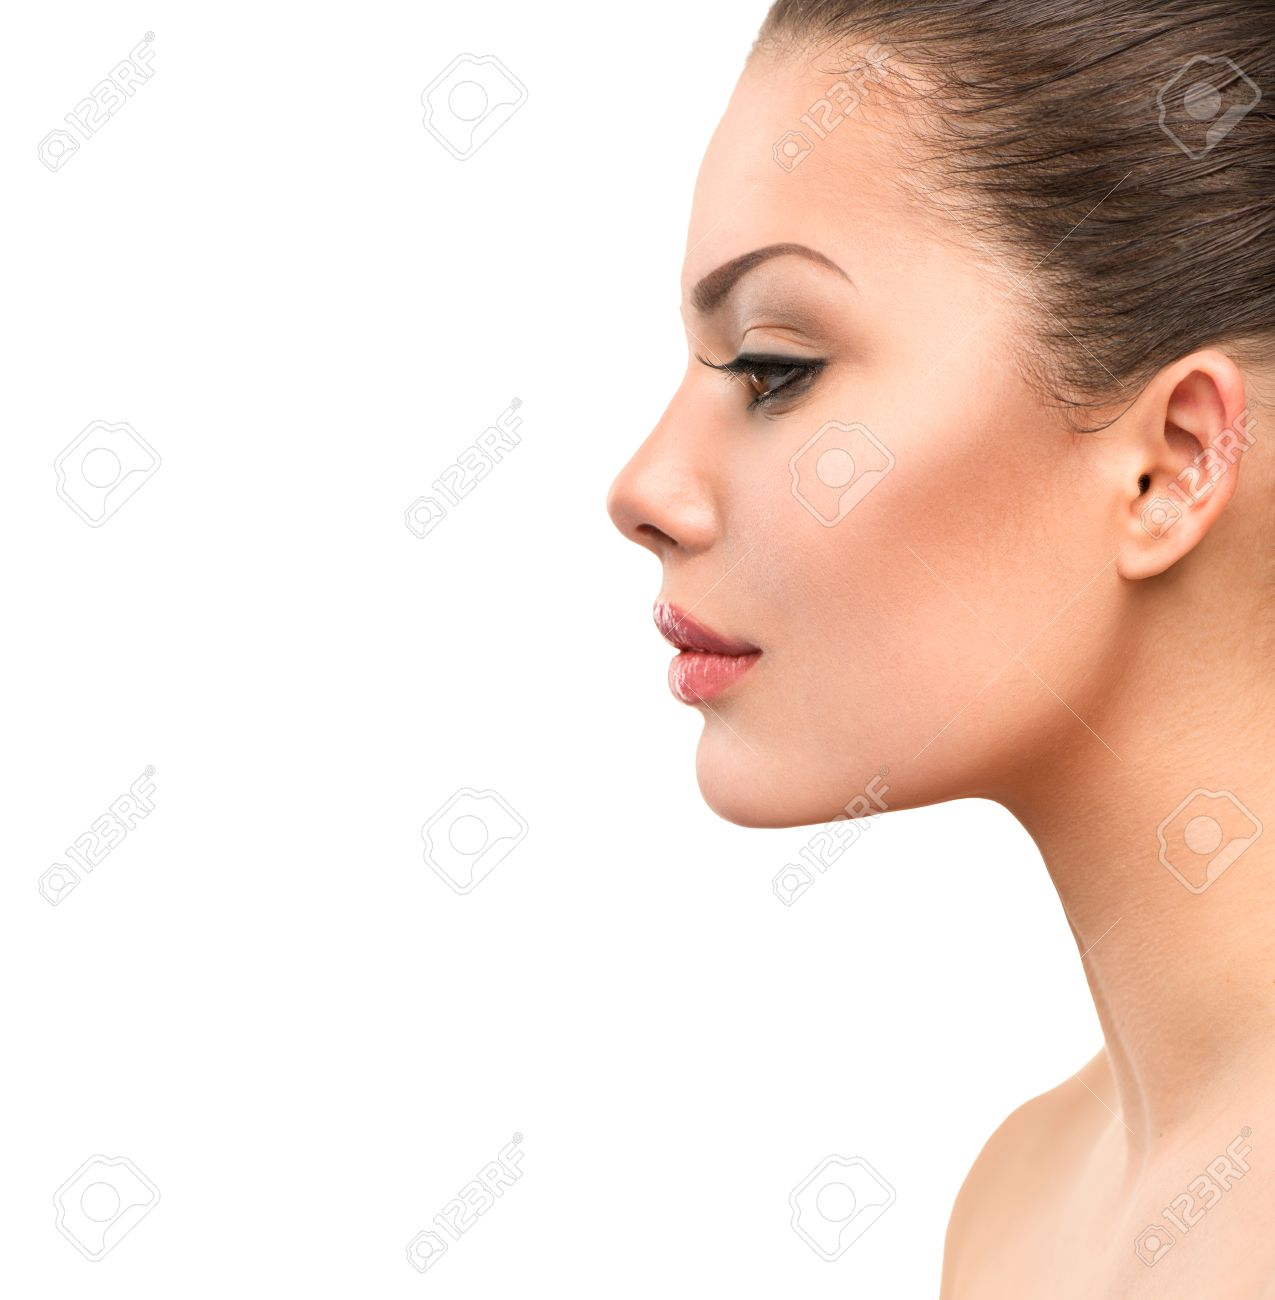 Beautiful Profile Face Of Young Woman With Clean Fresh Skin Stock Photo Picture And Royalty Free Image Image 32267216